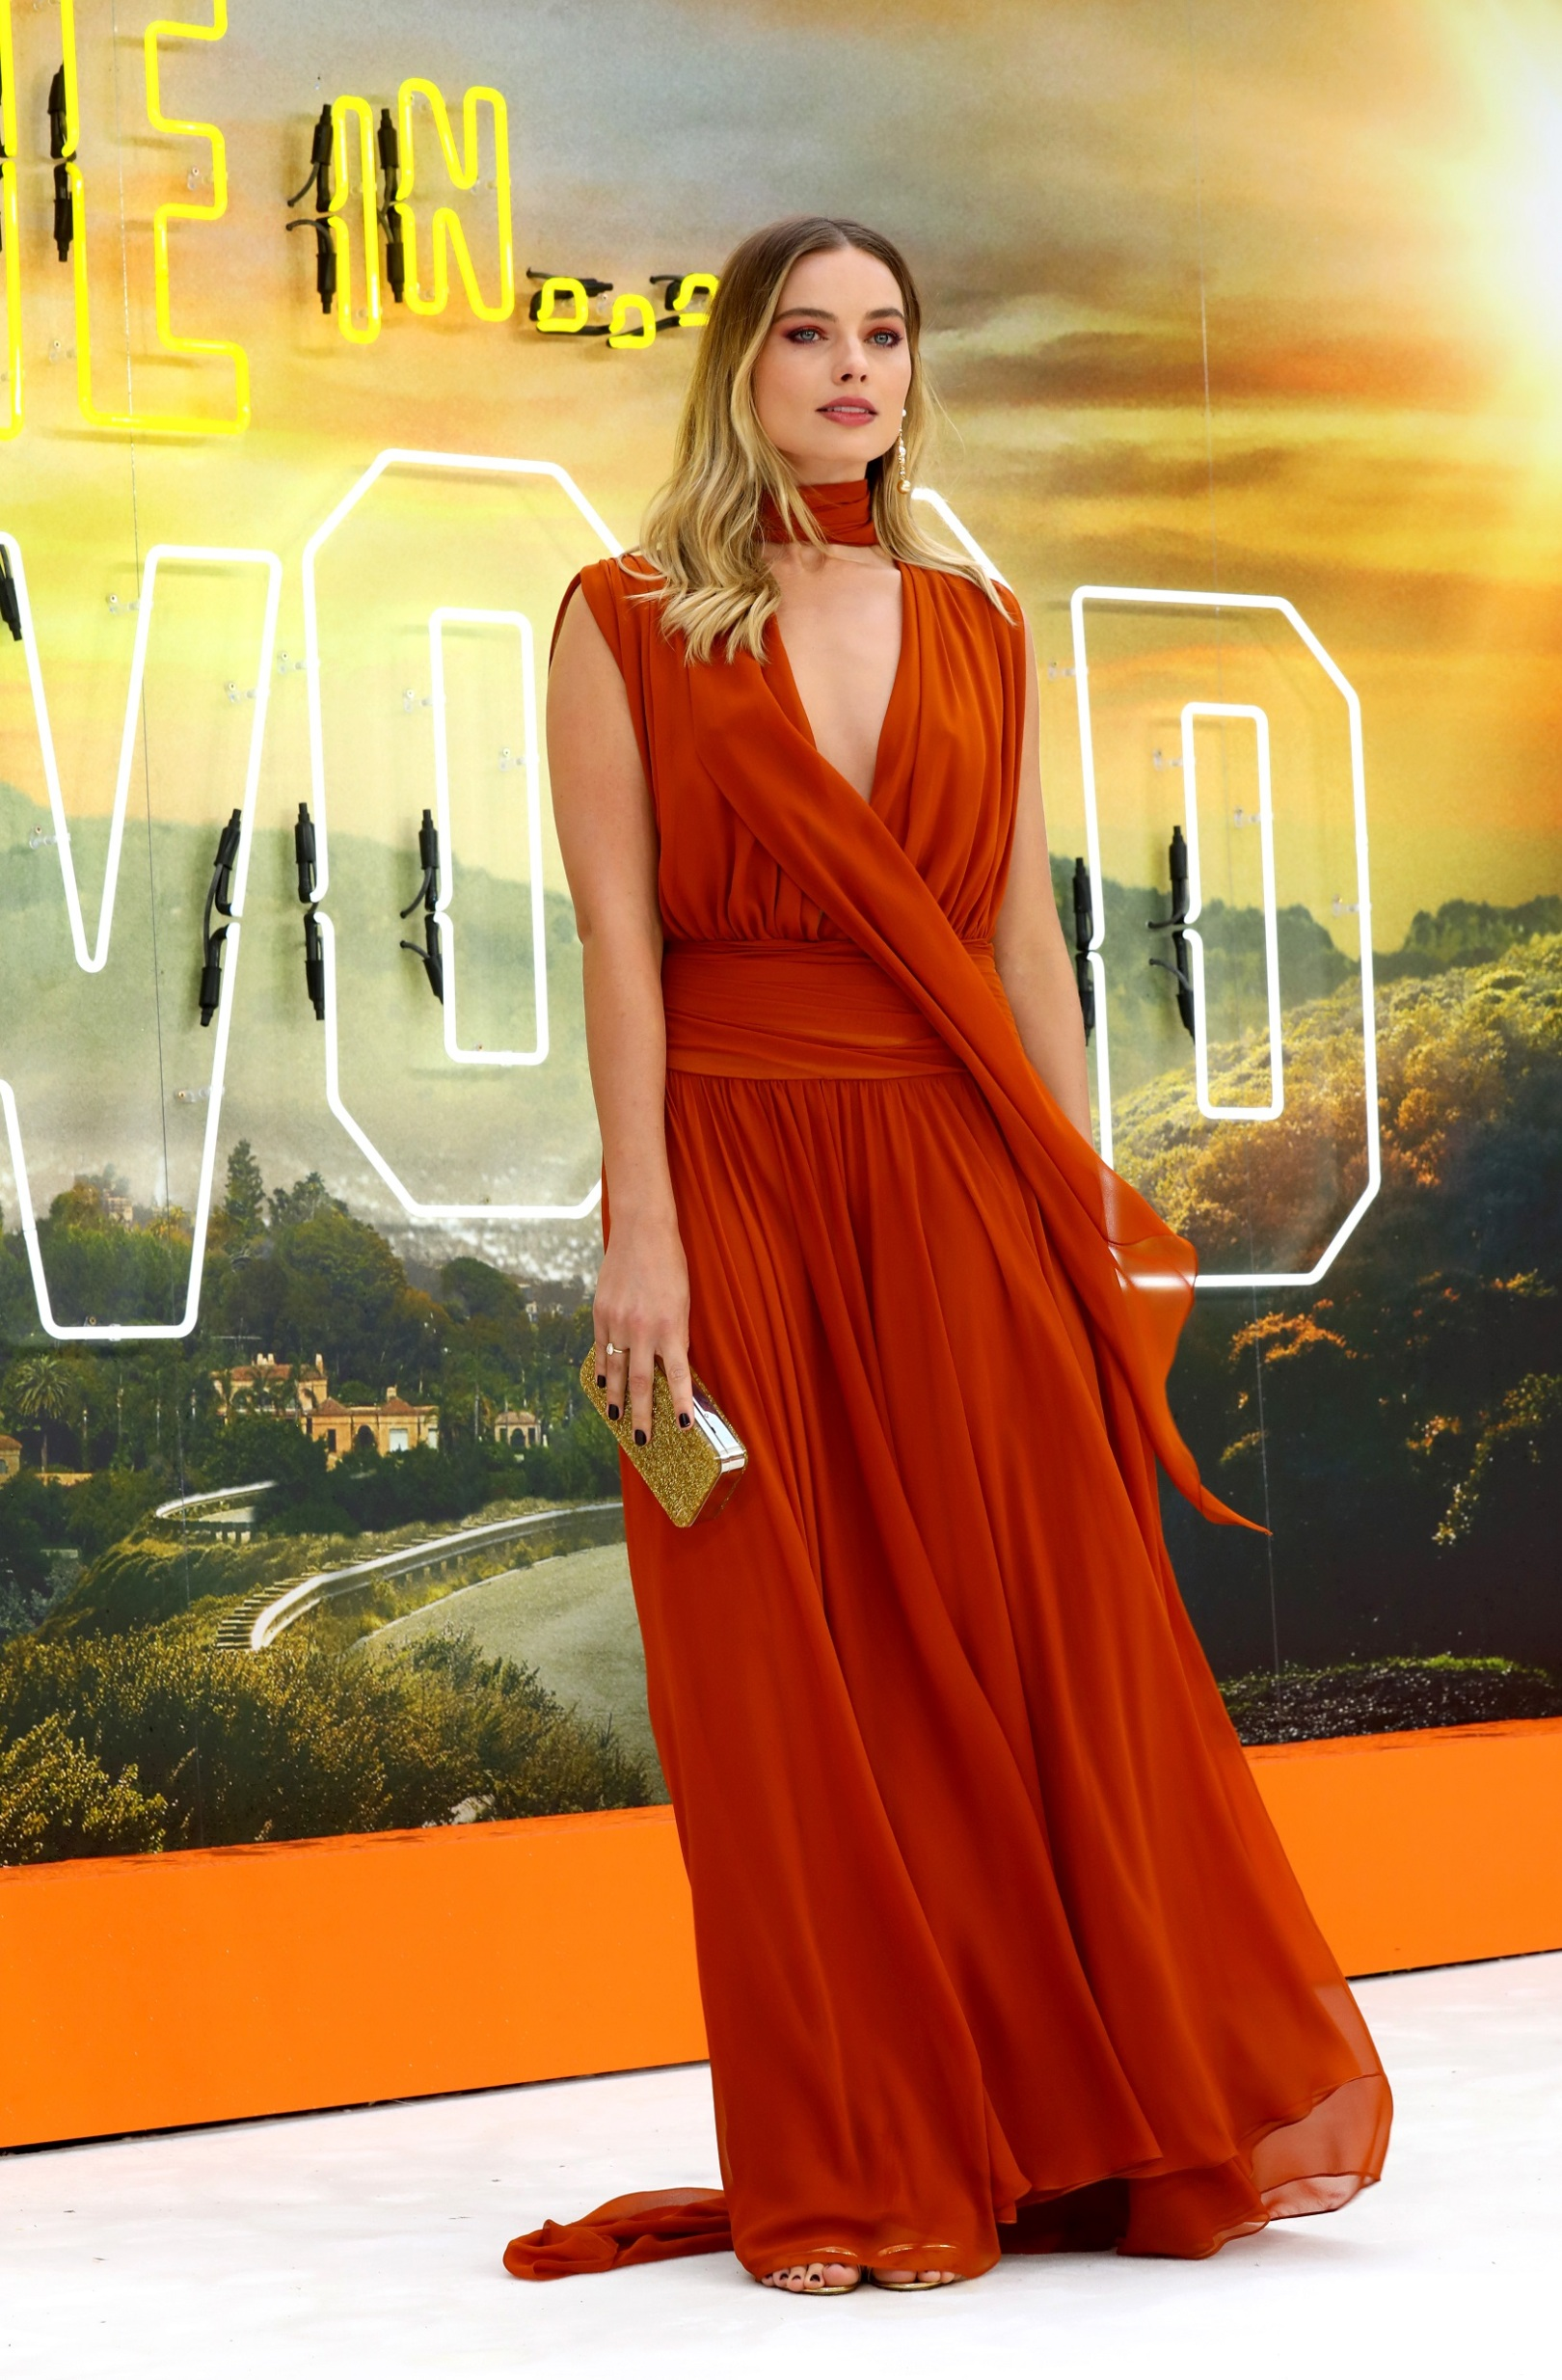 LONDON, ENGLAND - JULY 30:  Margot Robbie attends the UK Premiere of Once Upon A Time...In Hollywood at Odeon Luxe Leicester Square on July 30, 2019 in London, England. (Photo by Tim P. Whitby/Getty Images for Sony)